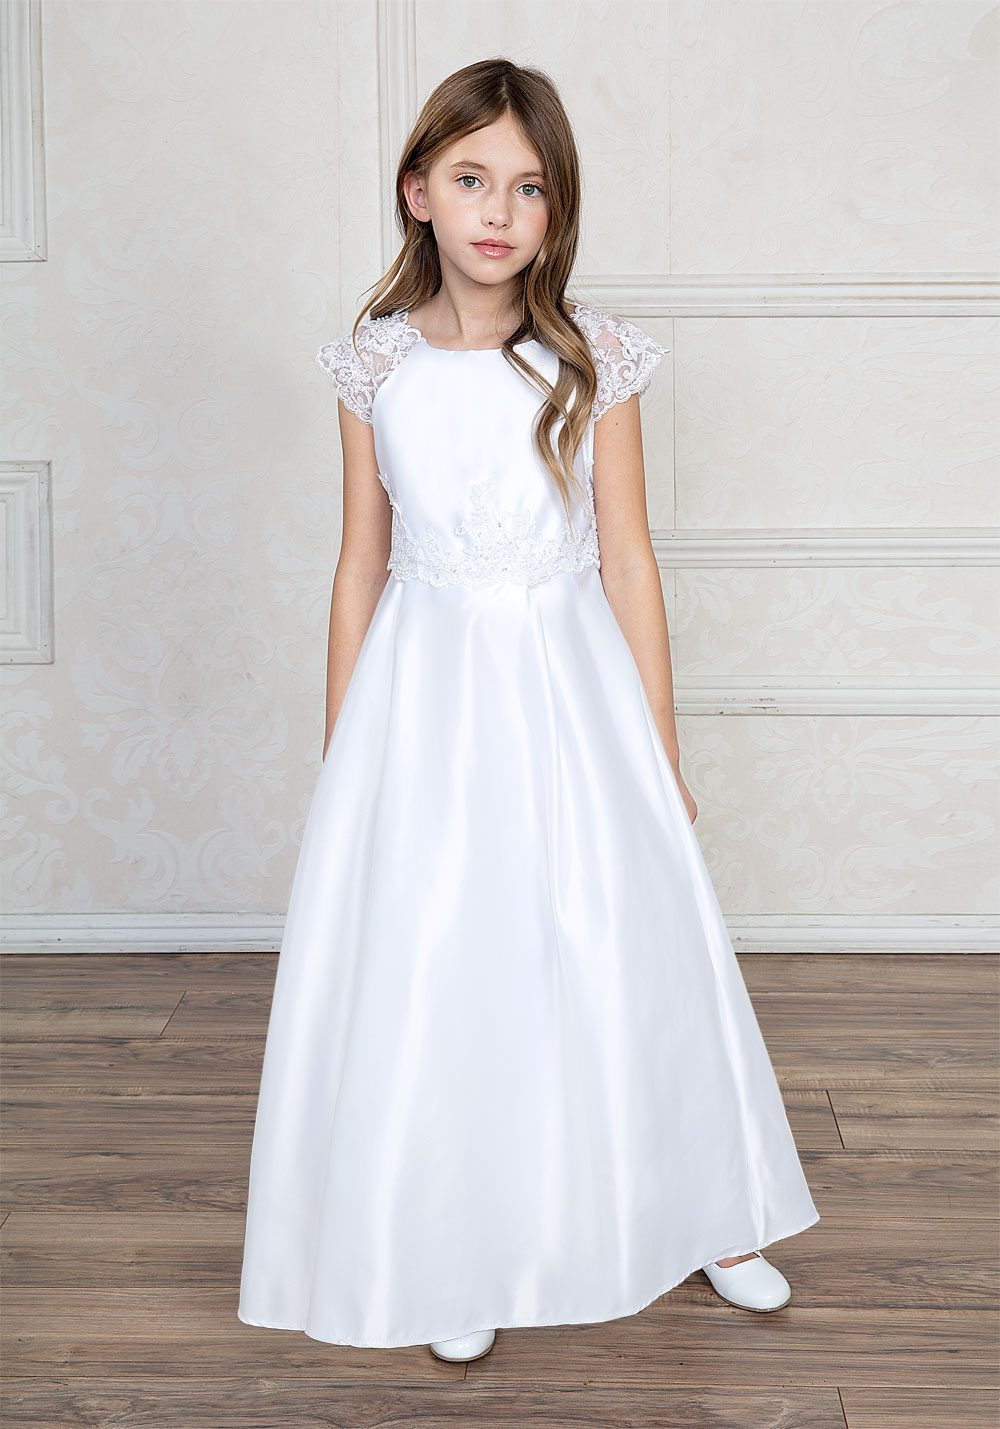 Satin A Line First Communion Dress with Lace Cap Sleeves